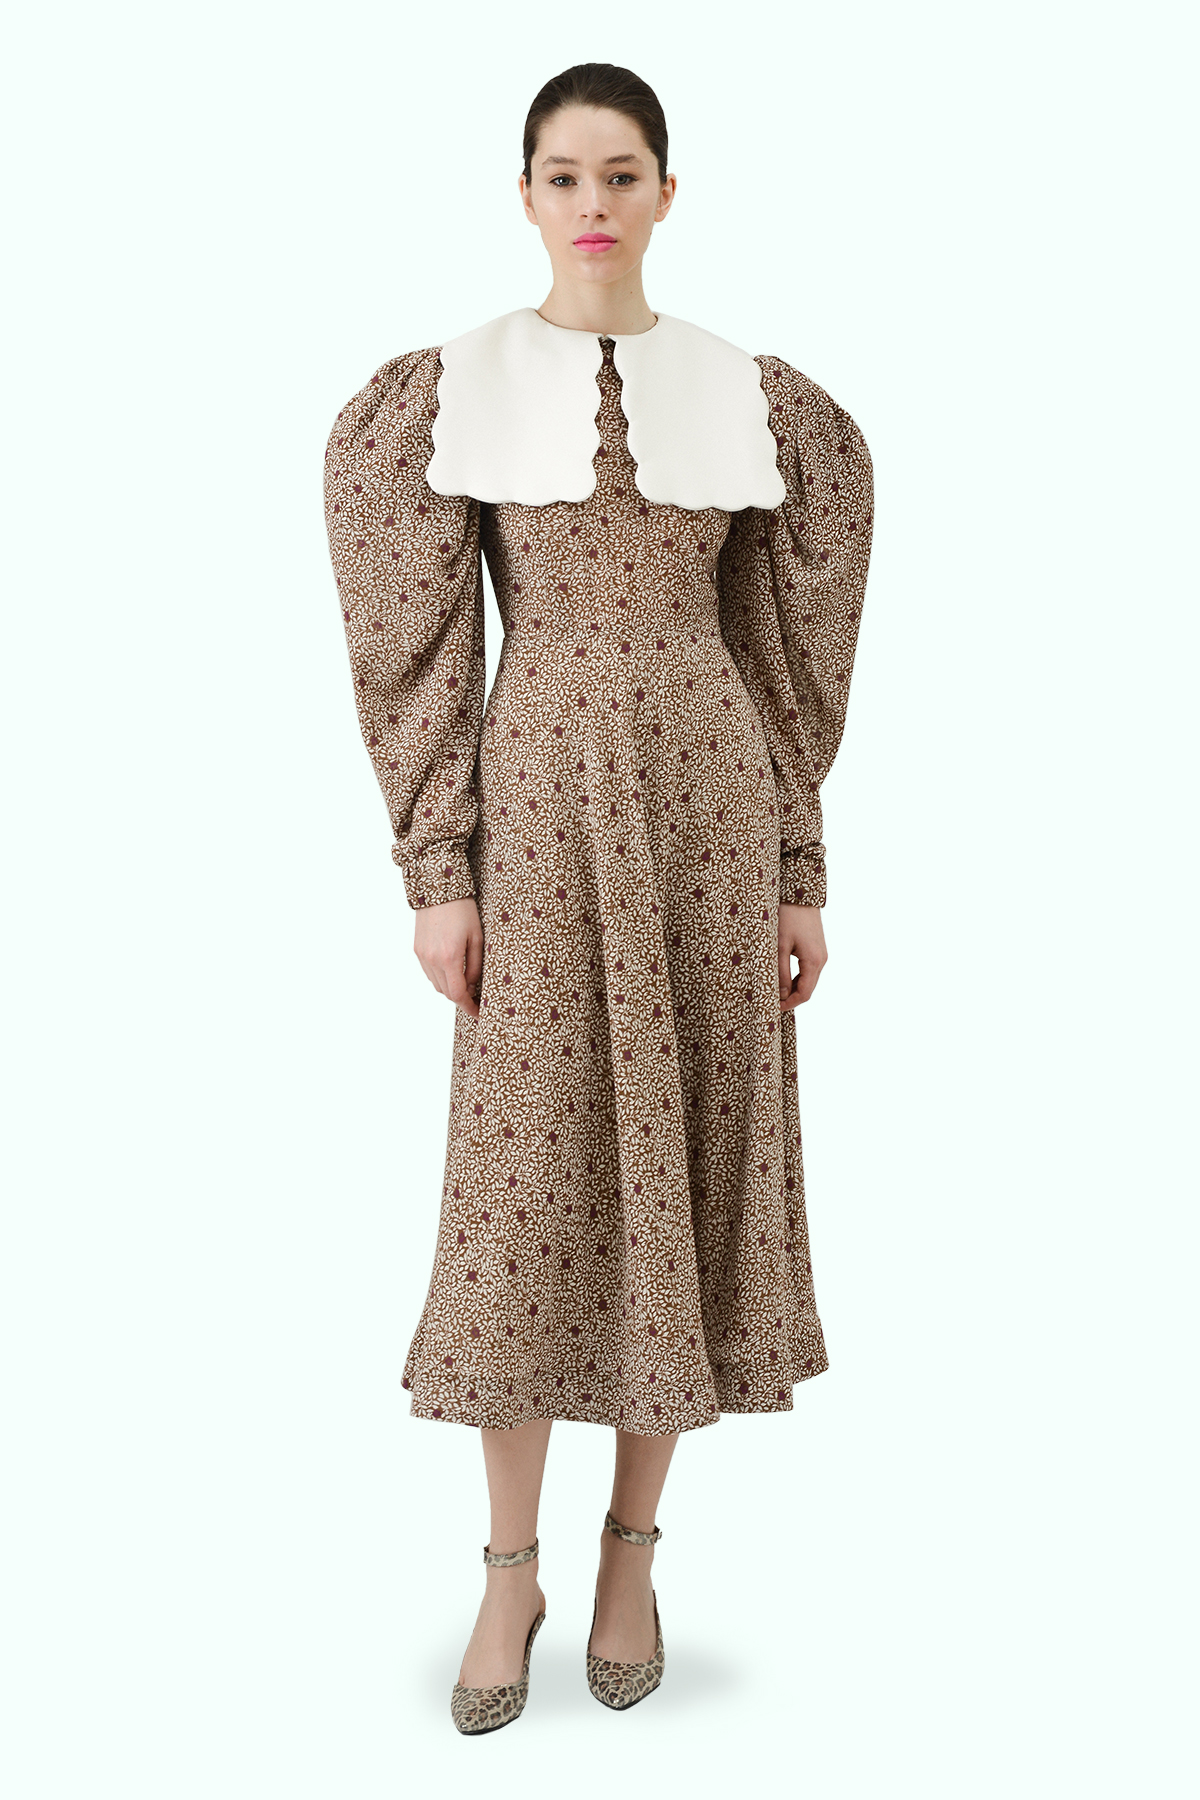 Floral print chiffon dress with puff sleeves and white vegan leather puritan collar 4